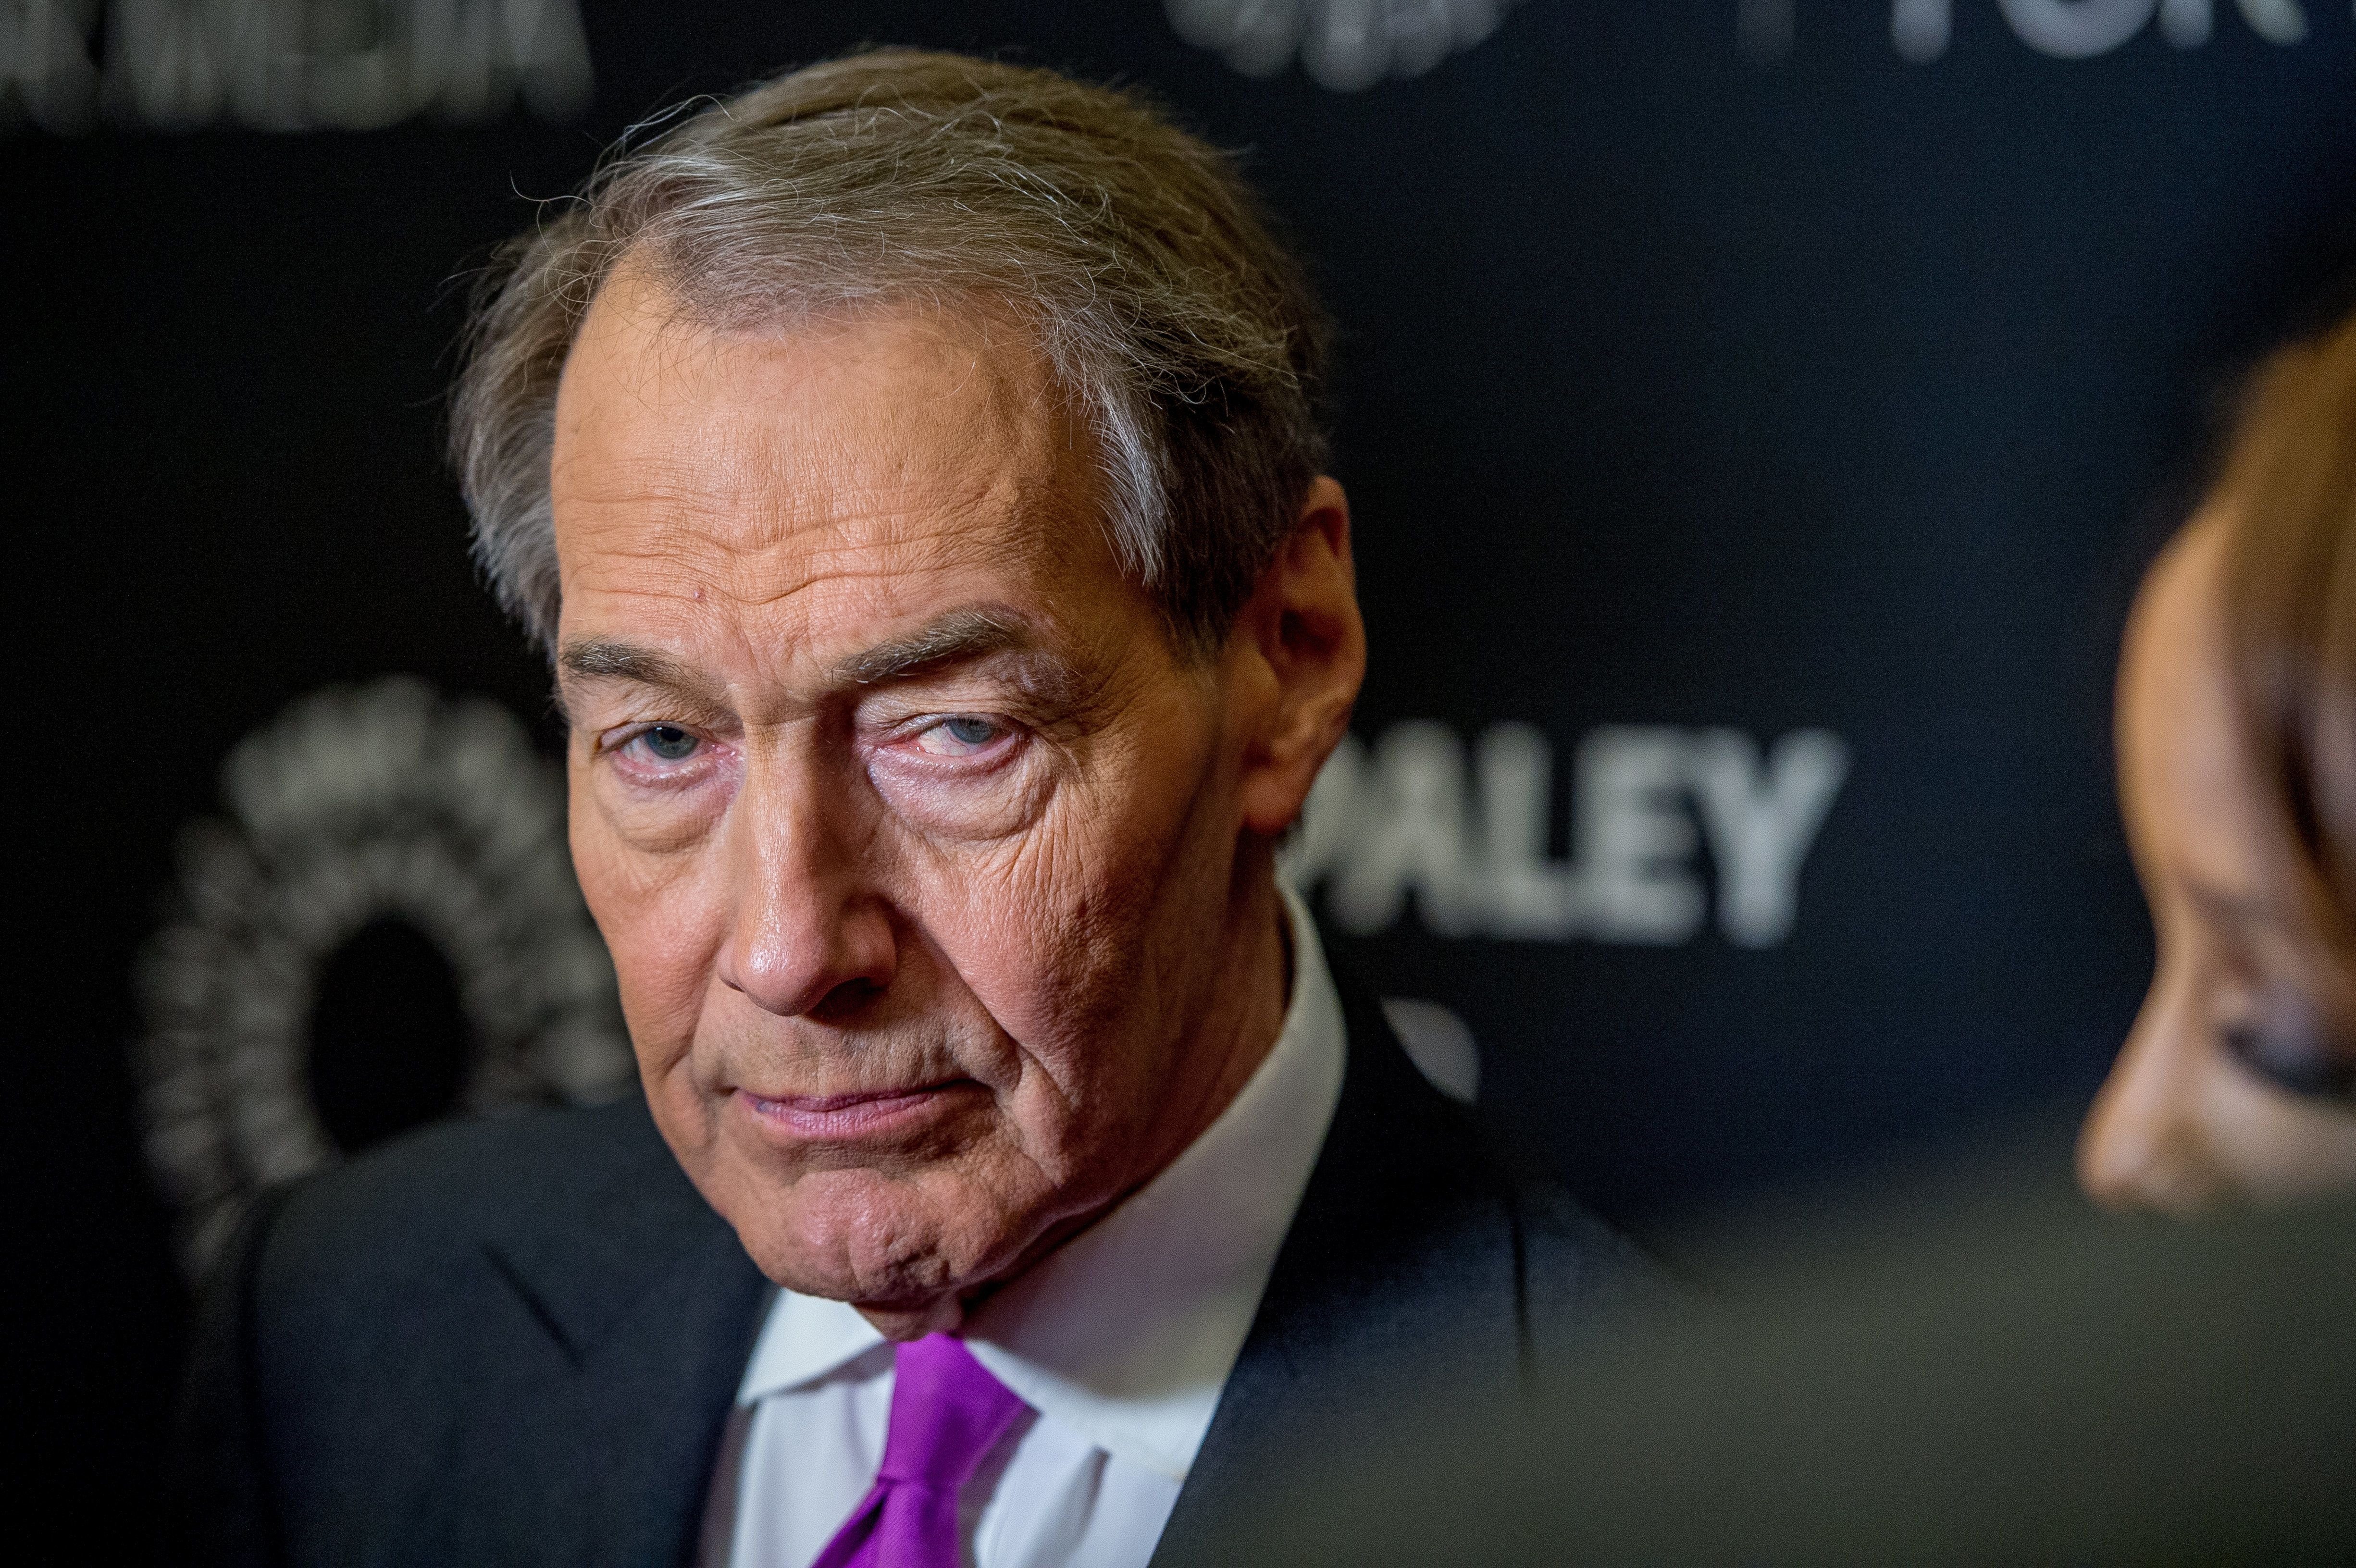 NEW YORK, NY - NOVEMBER 01:  Charlie Rose attends The Paley Center for Media Presents: The News is Back: CBS This Morning And The Morning Landscape at The Paley Center for Media on November 1, 2017 in New York City.  (Photo by Roy Rochlin/Getty Images)